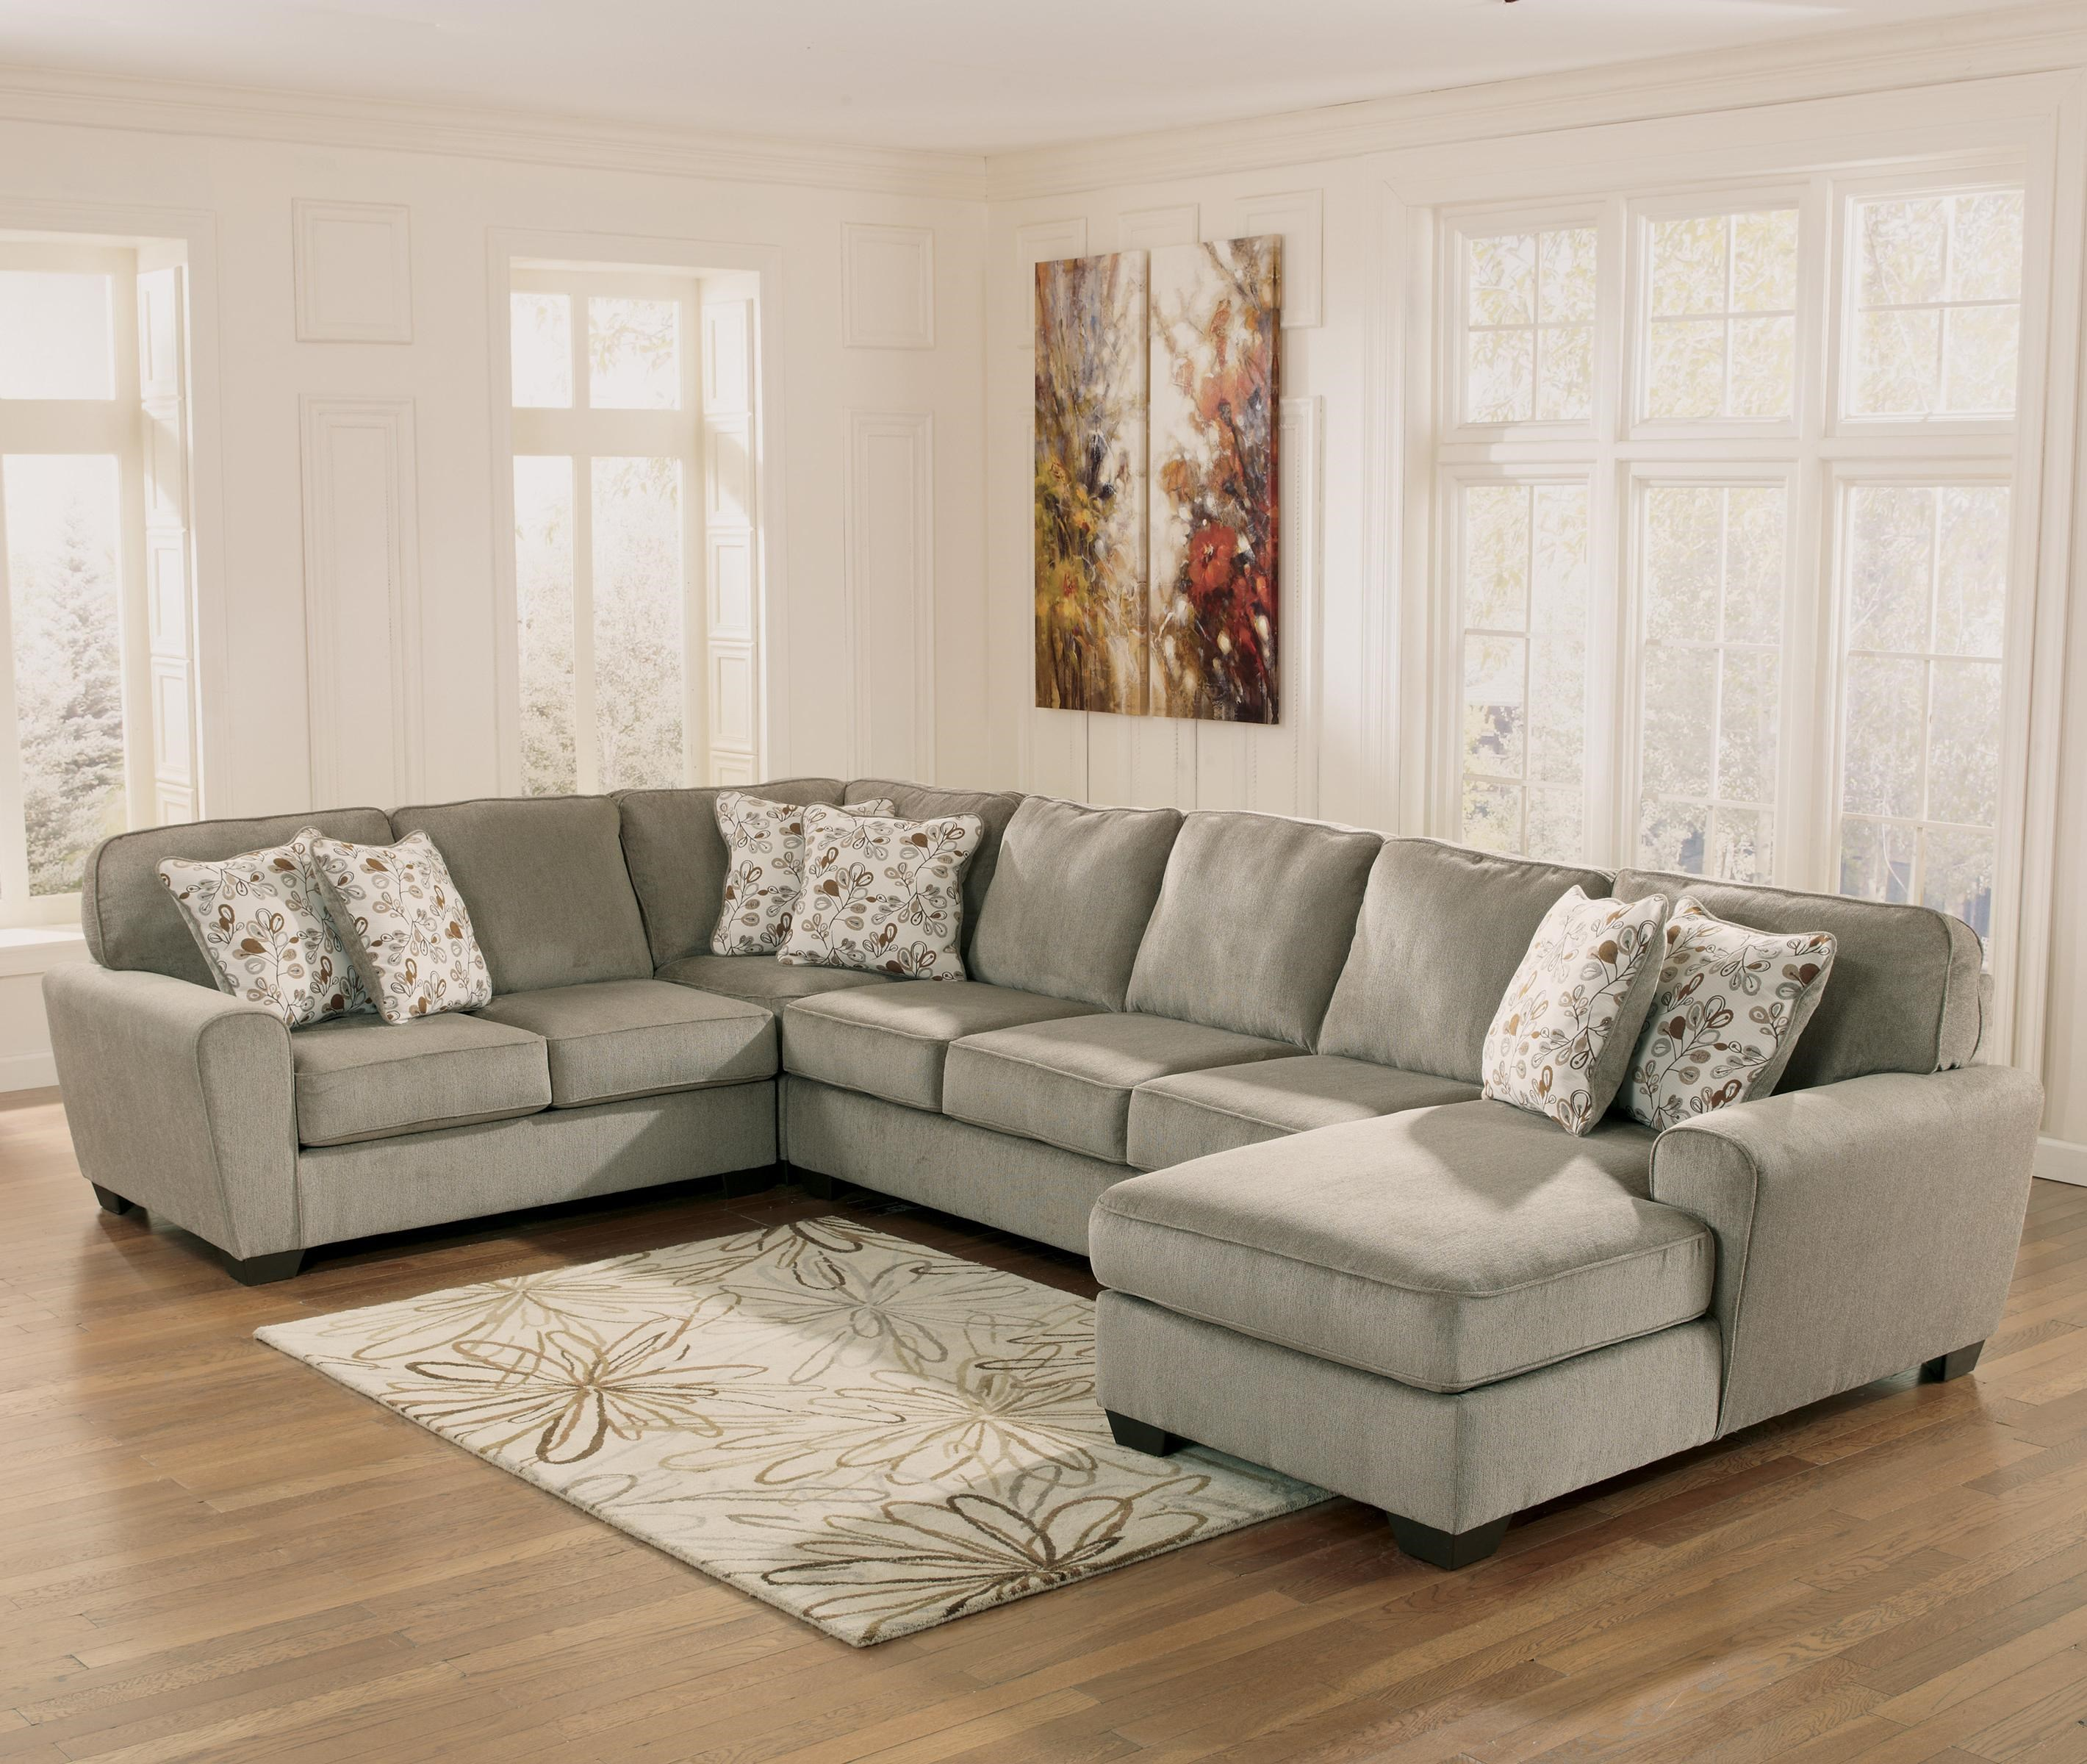 Beau Ashley Furniture Patola Park   Patina 4 Piece Sectional With Right Chaise